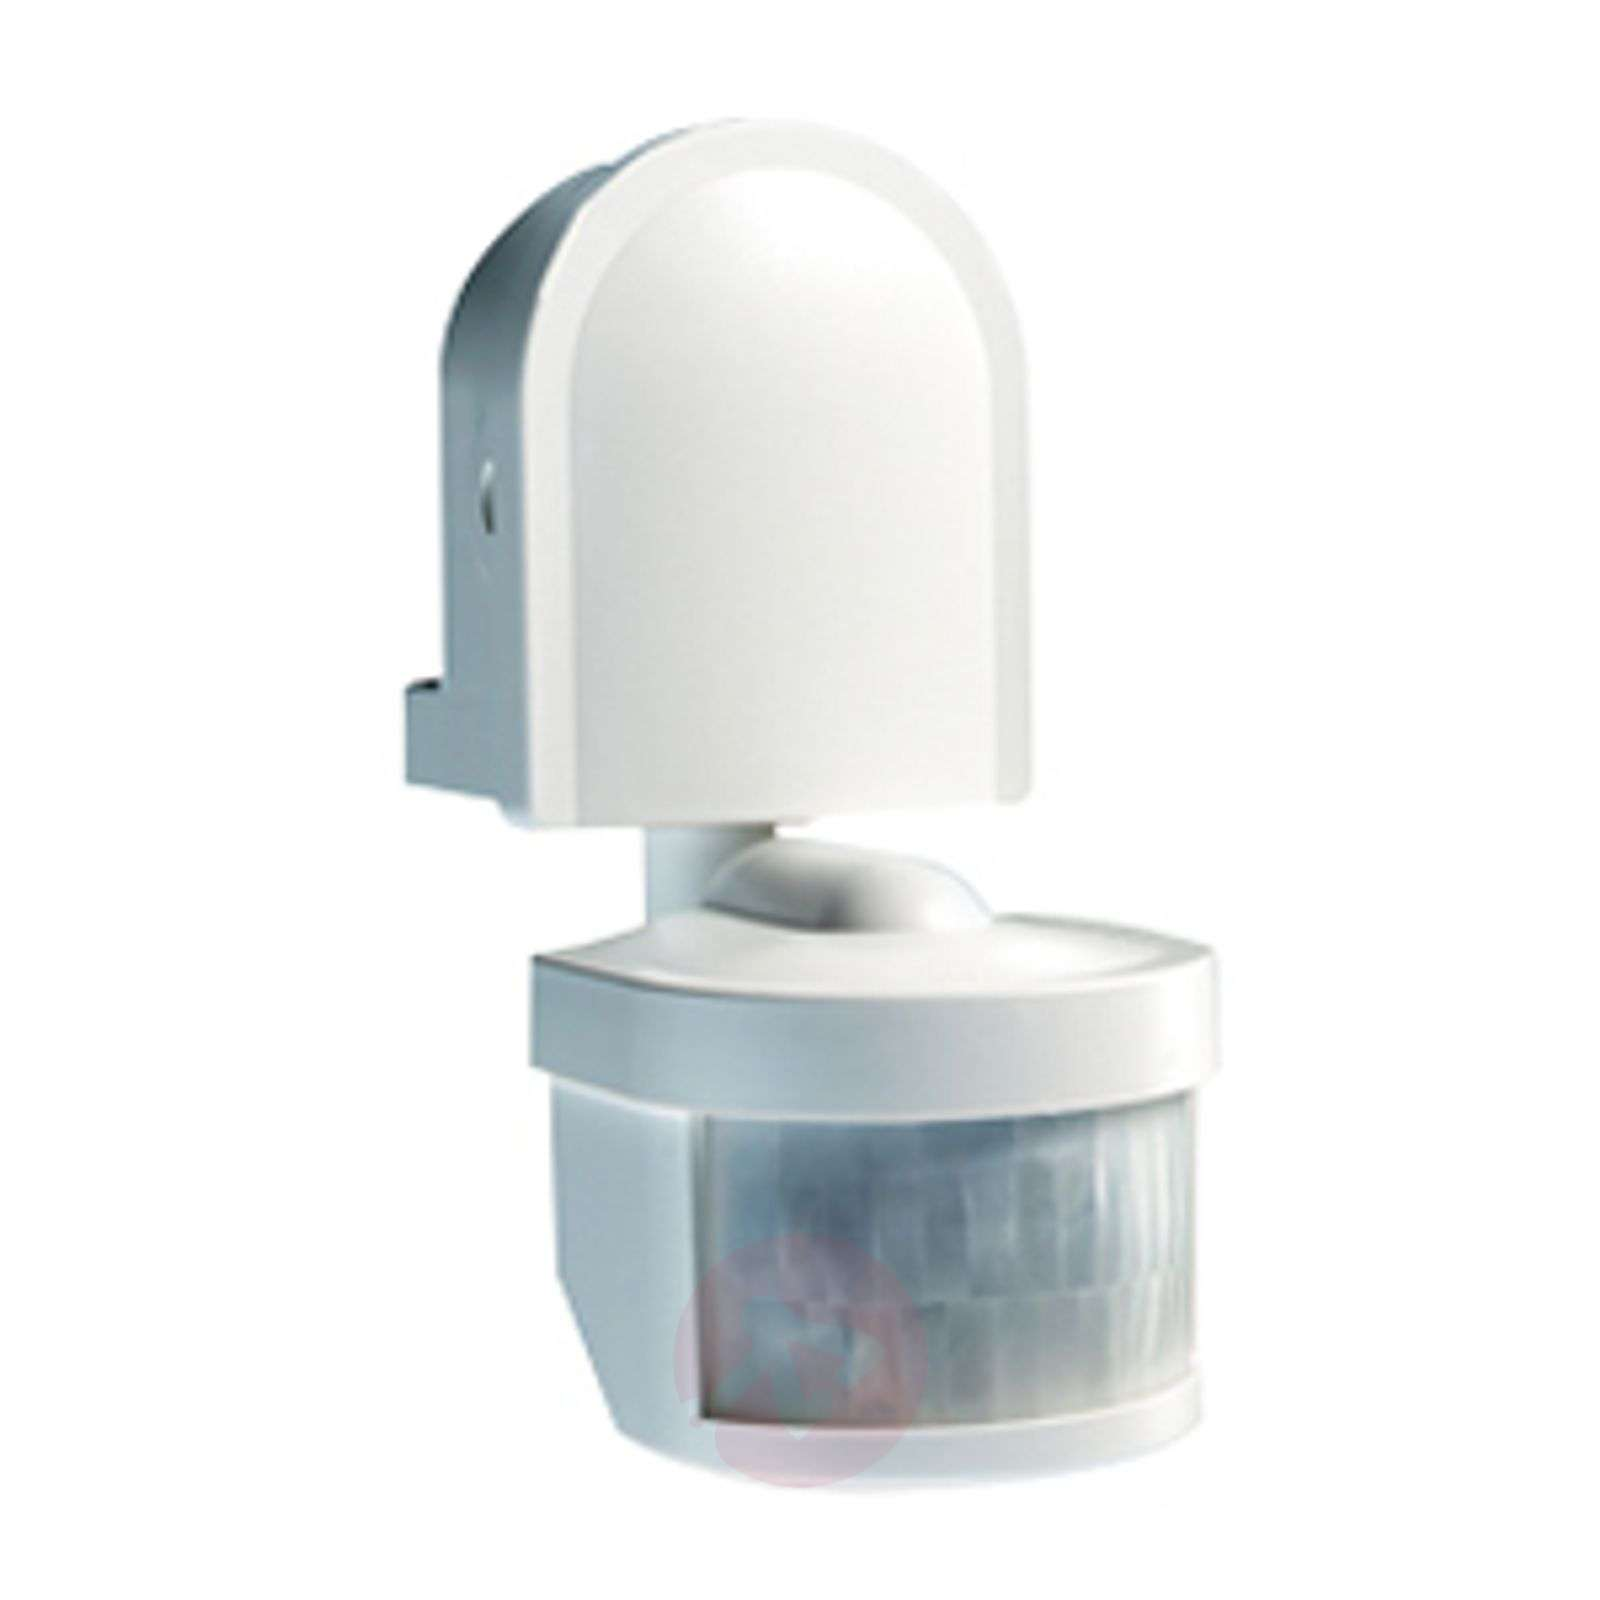 State-of-the-art LBB 180degree motion detector-4013114-01